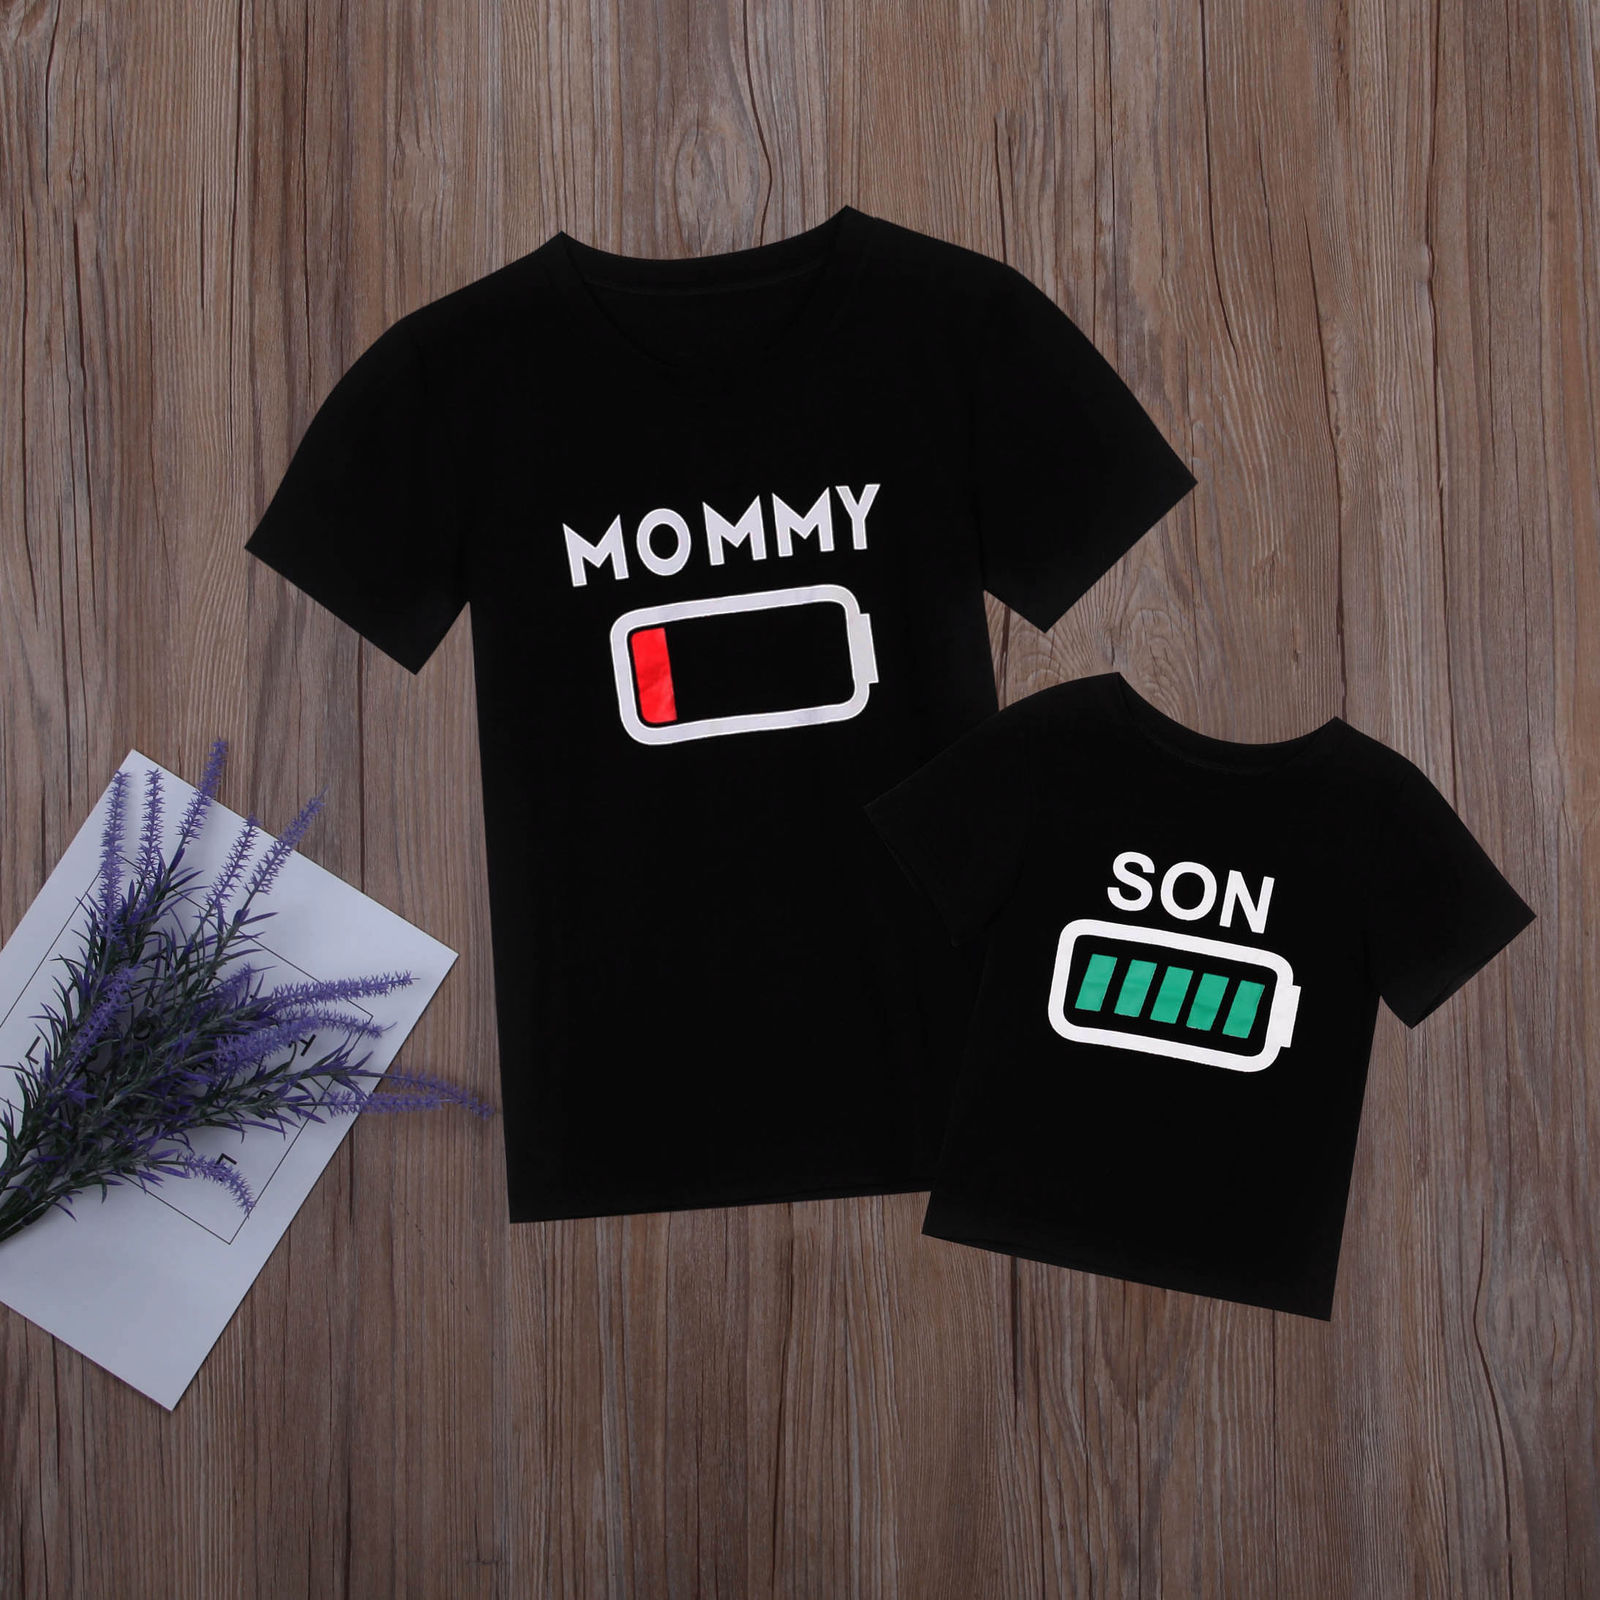 Matching Shirts Tees Outfit Graphic Baby-Boys Kids Mommy Son Women Casual Tops Battery-Print